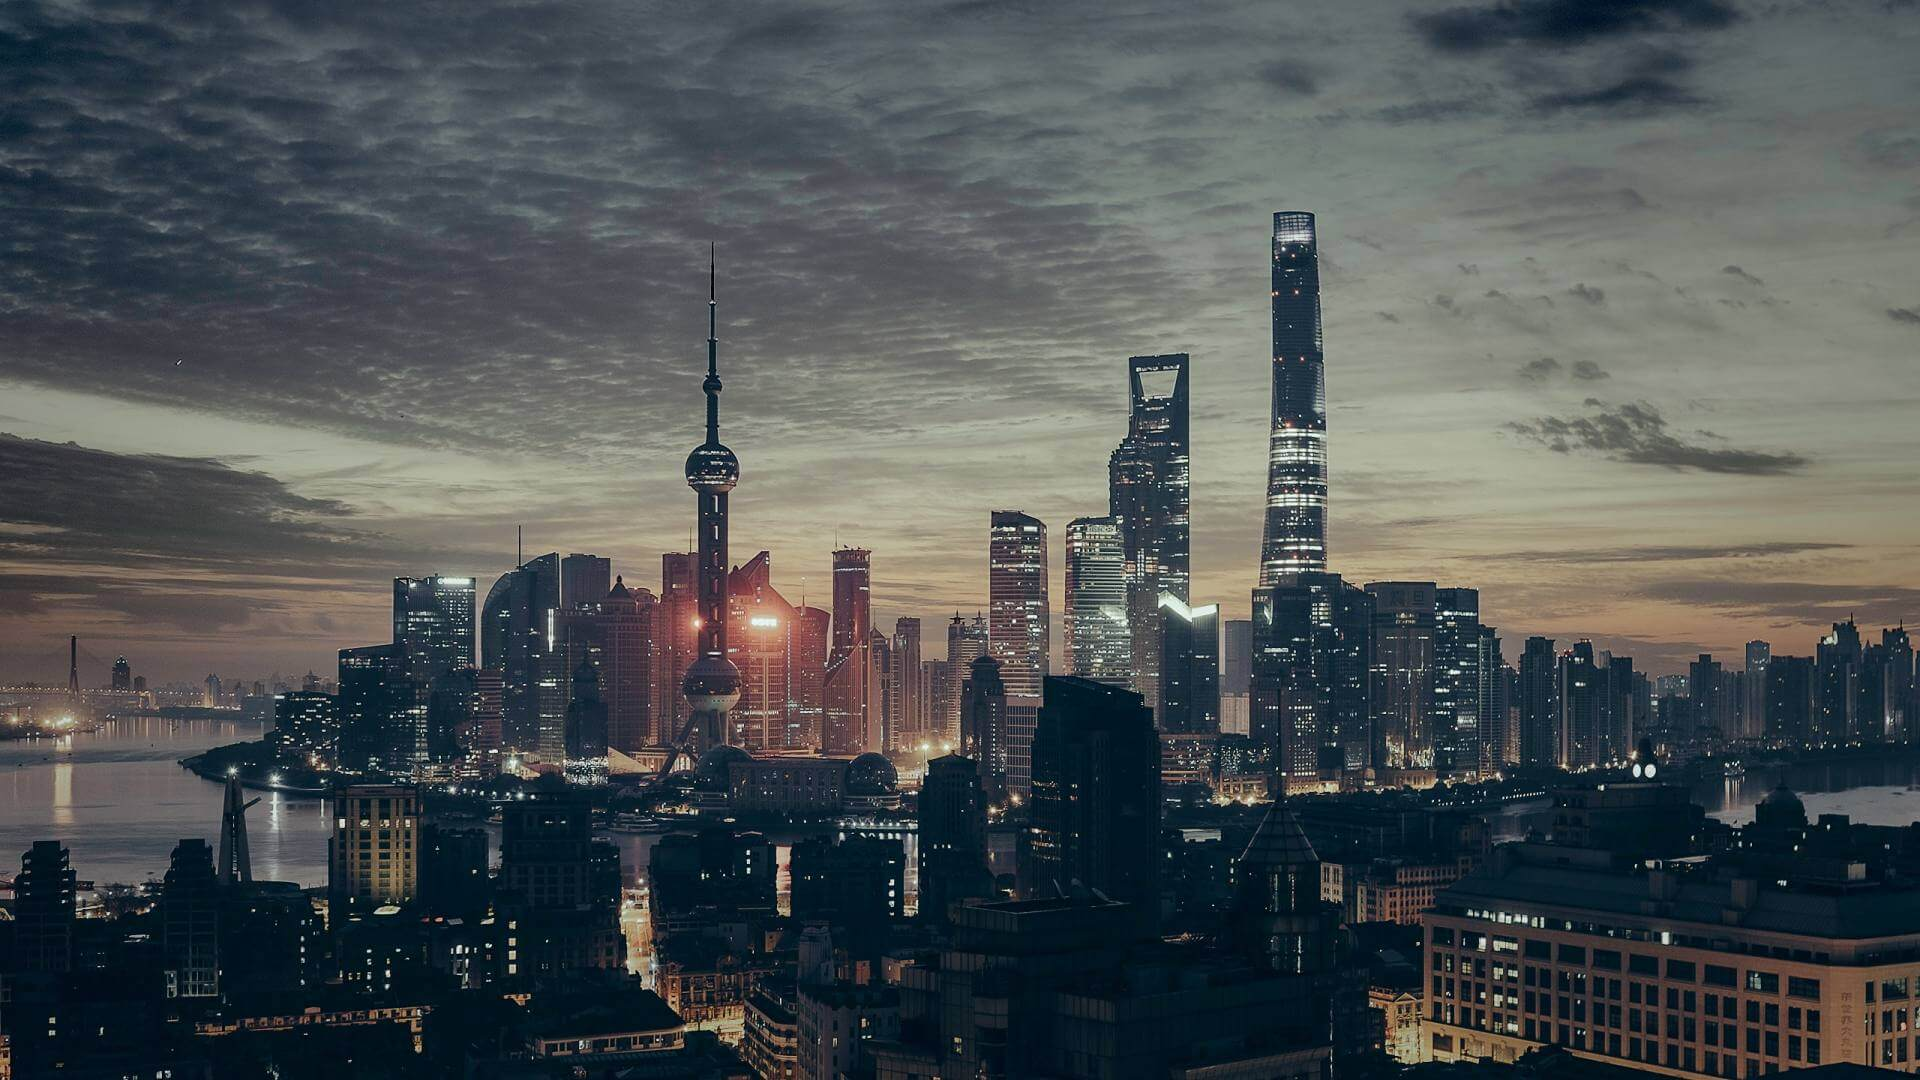 Illuminated buildings under a grey sky during night in Shanghai.